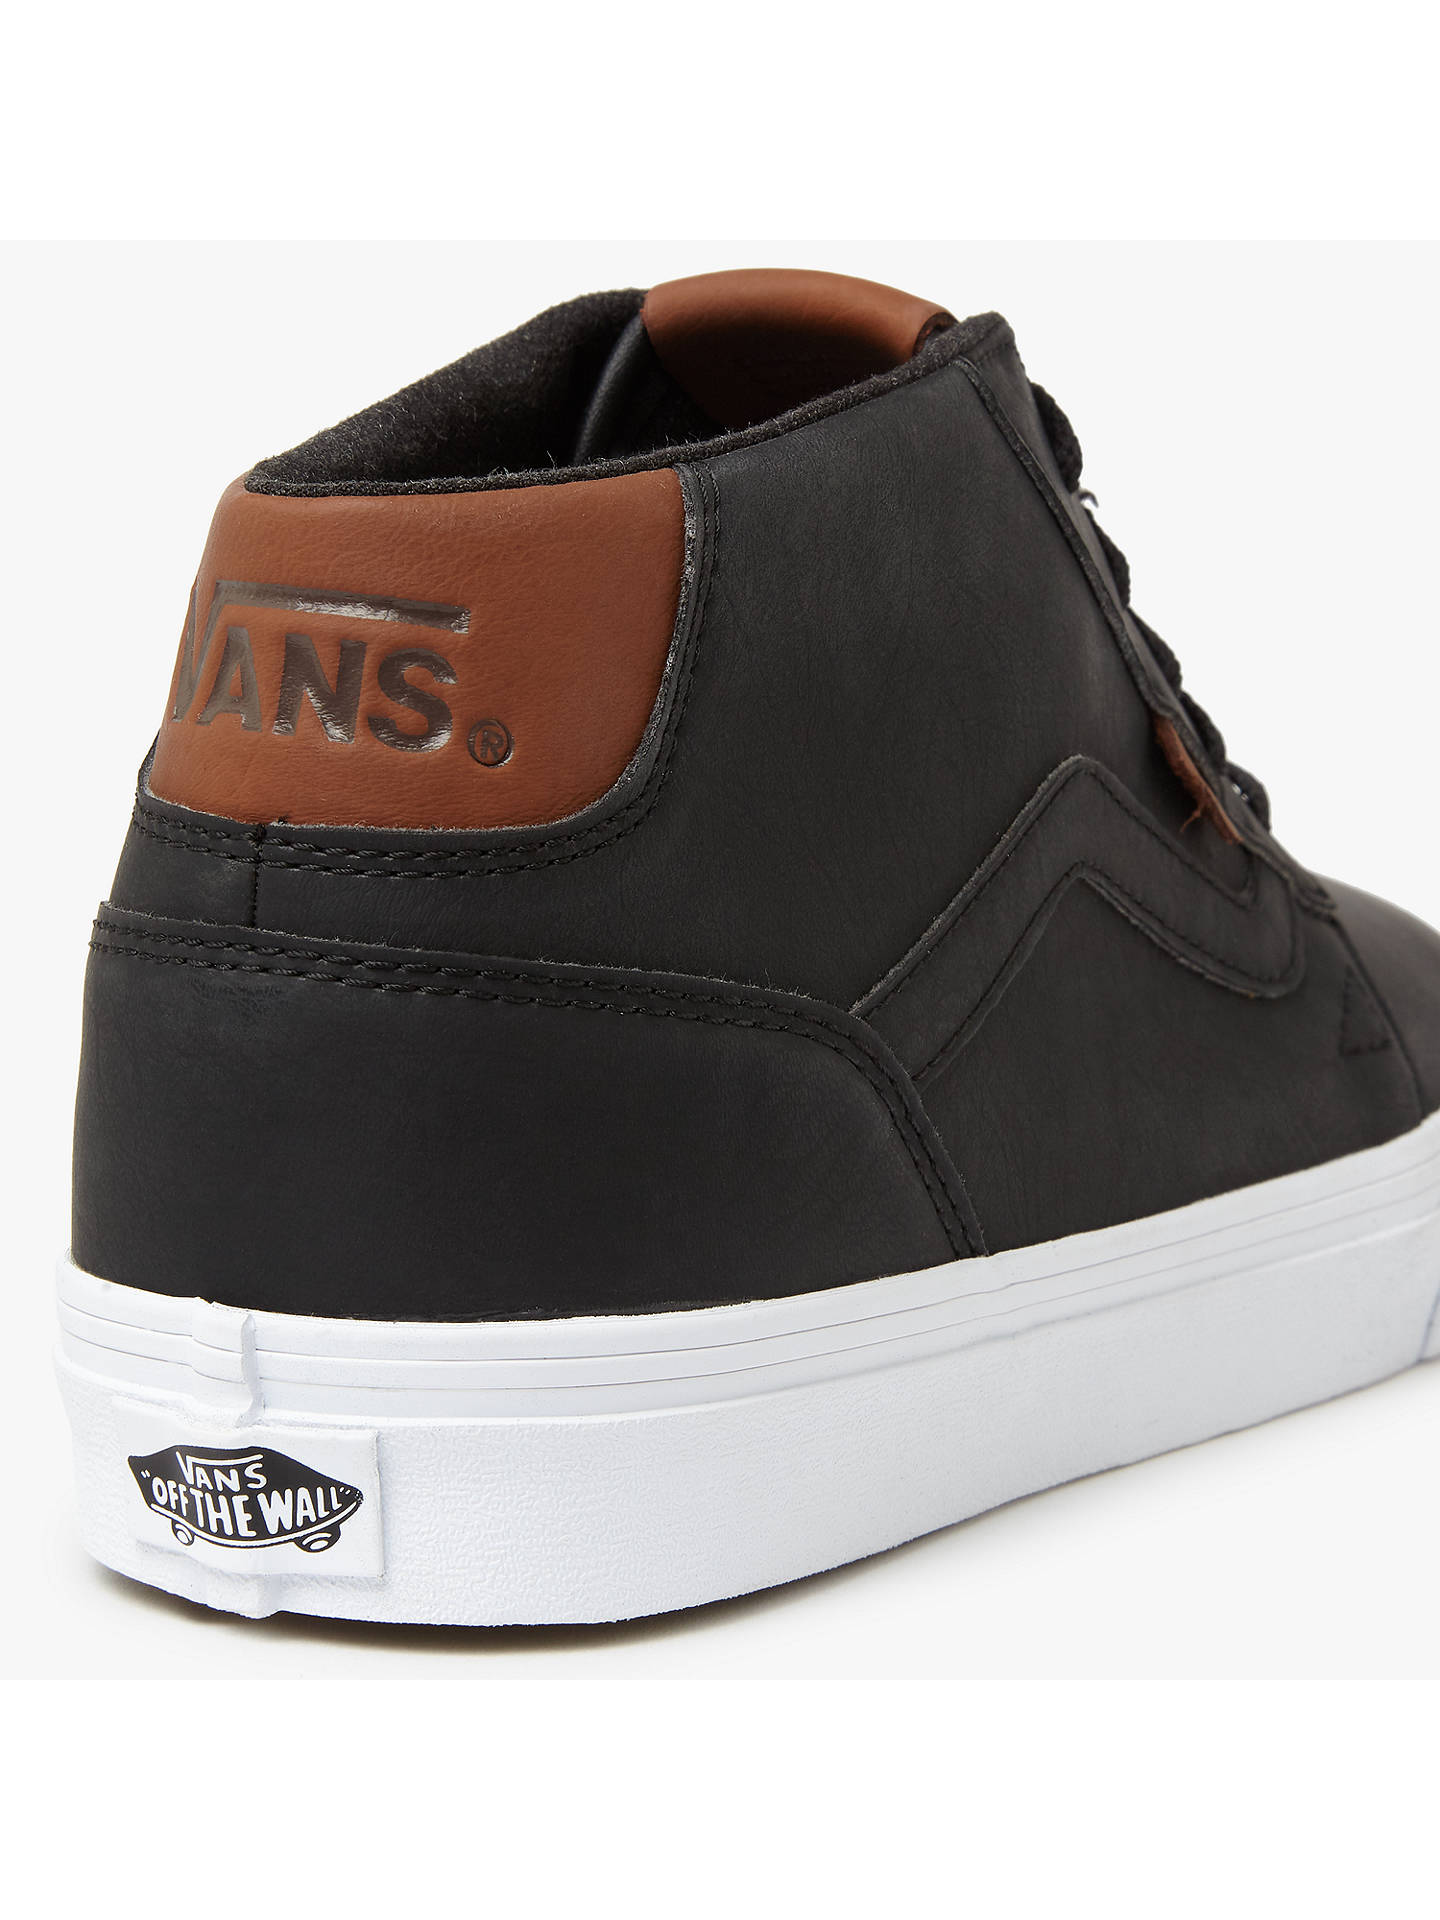 3604878a3716a Vans Chapman Mid Leather Trainers at John Lewis   Partners